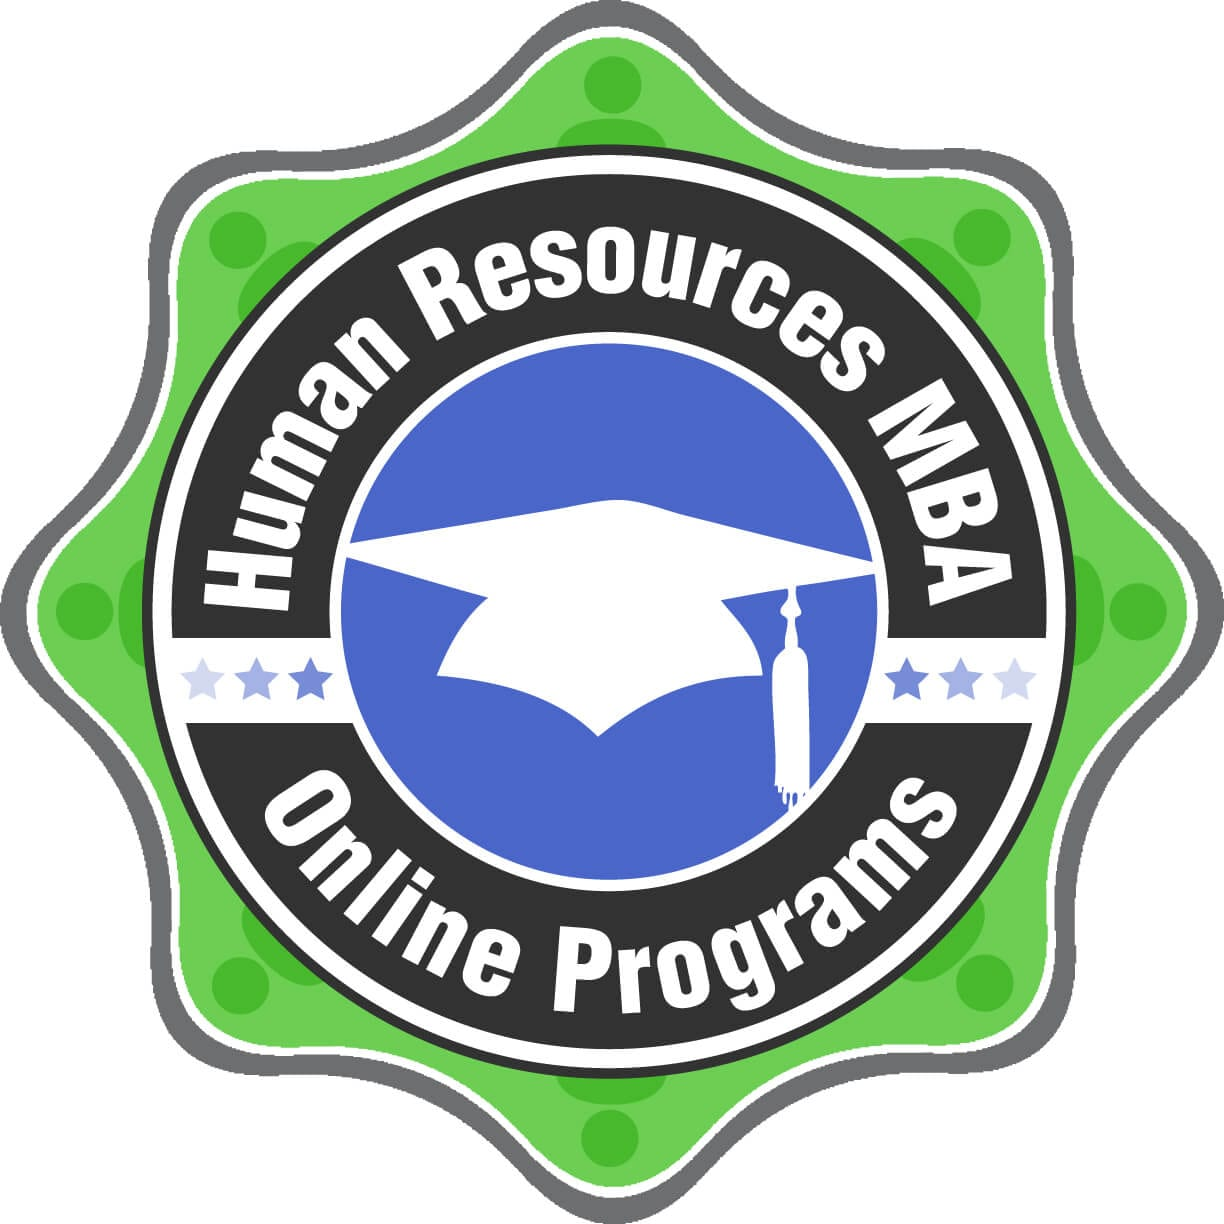 Human Resources subjects to major in college